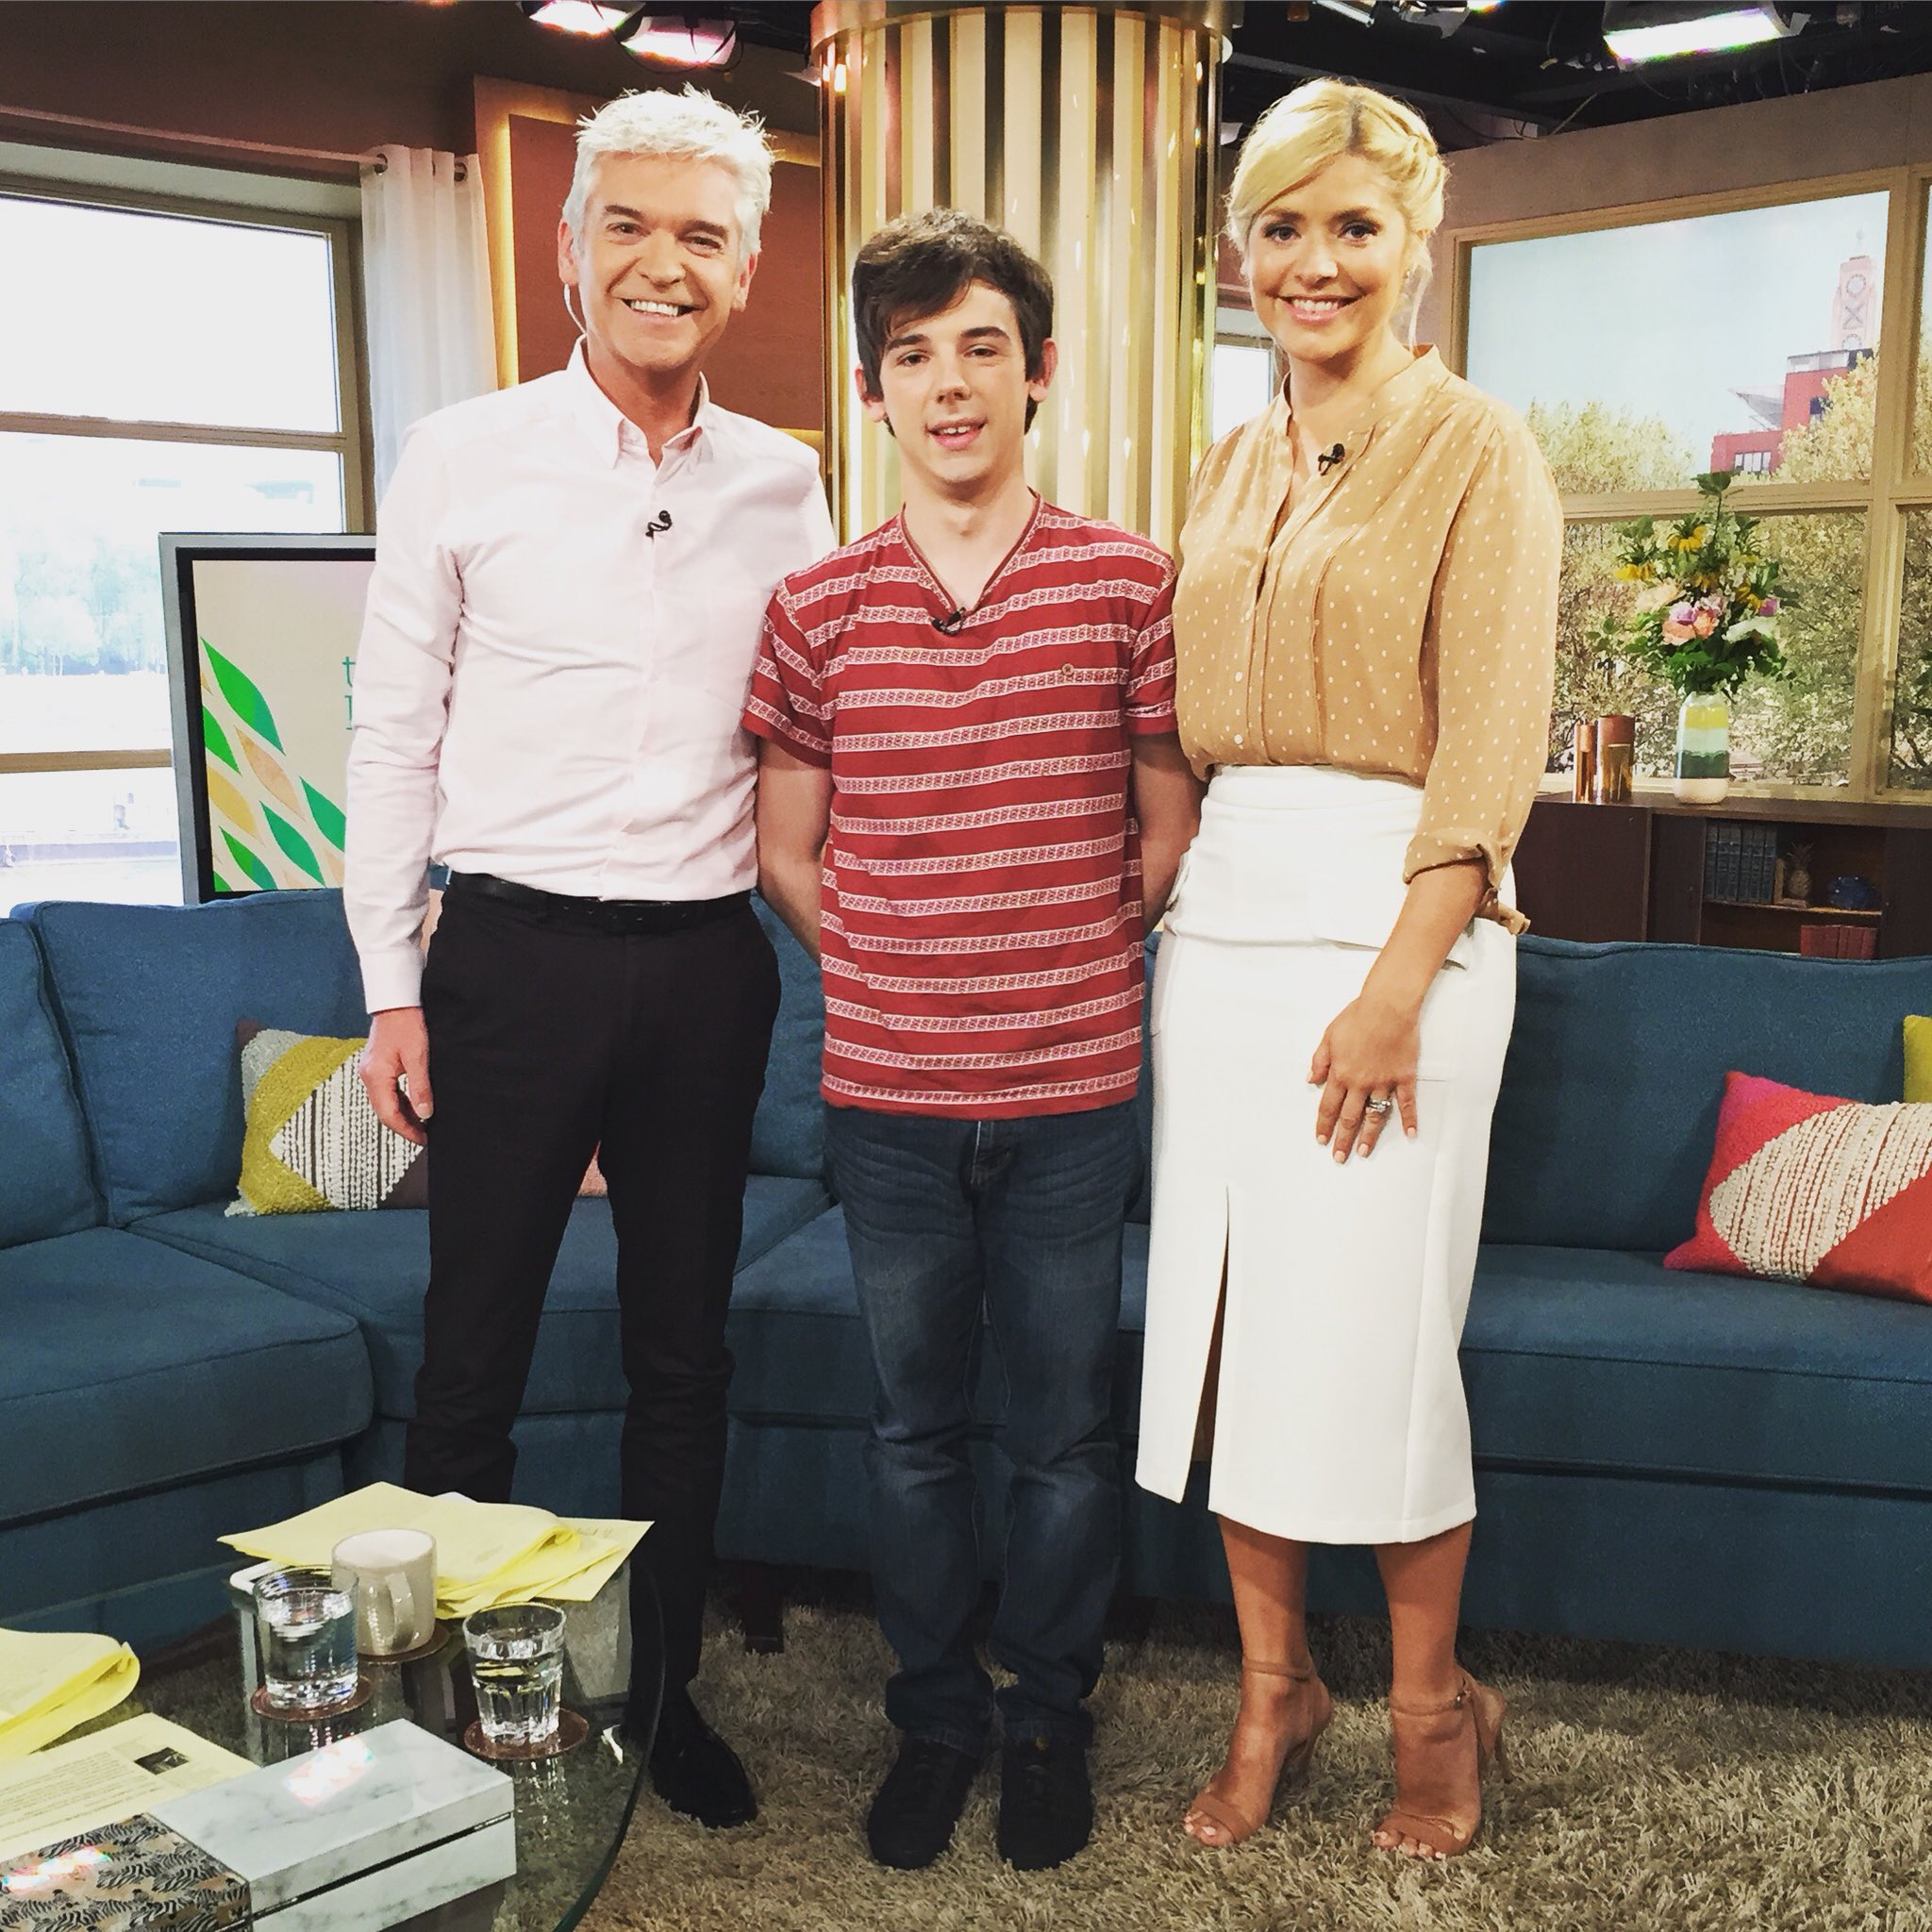 RT @itvthismorning: Lovely to meet Robert today 👏👏👏 #ActsOfKindness https://t.co/cy4FpuYZLp